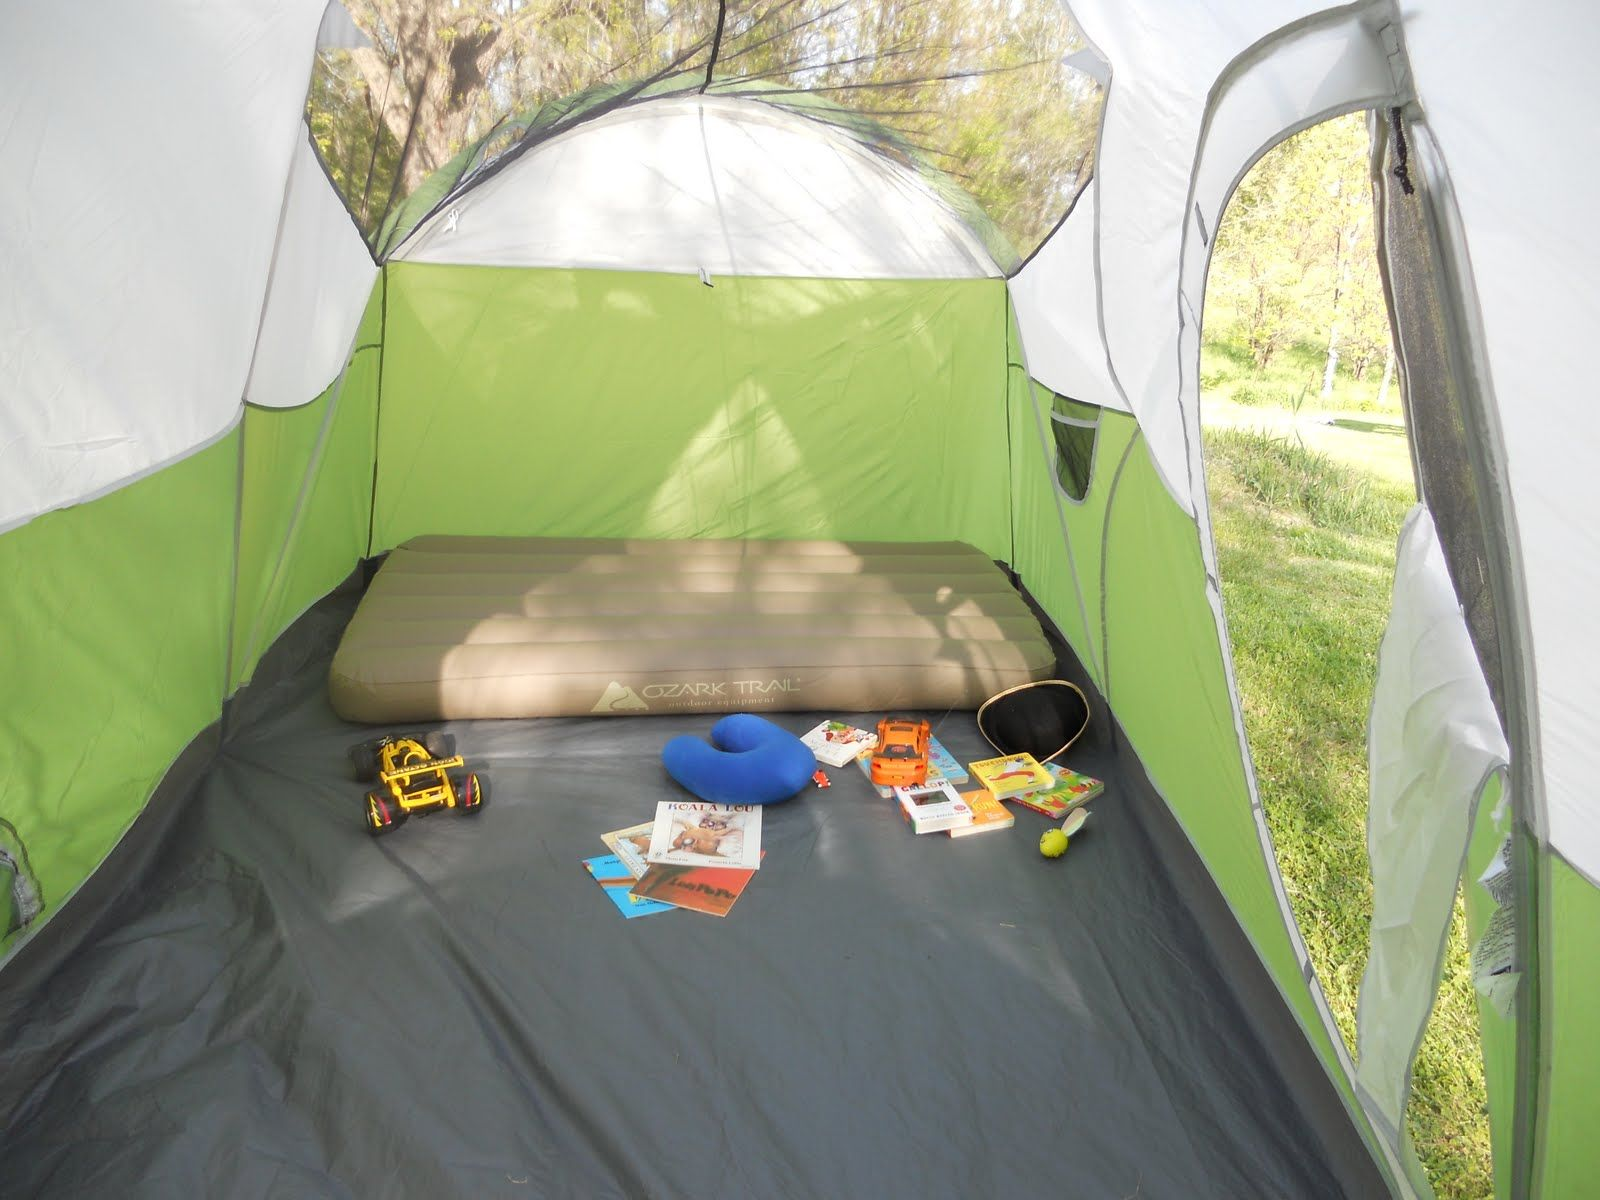 coleman 8 person tent & coleman 8 person tent | Summertime is Fun Time! | Pinterest | Tents